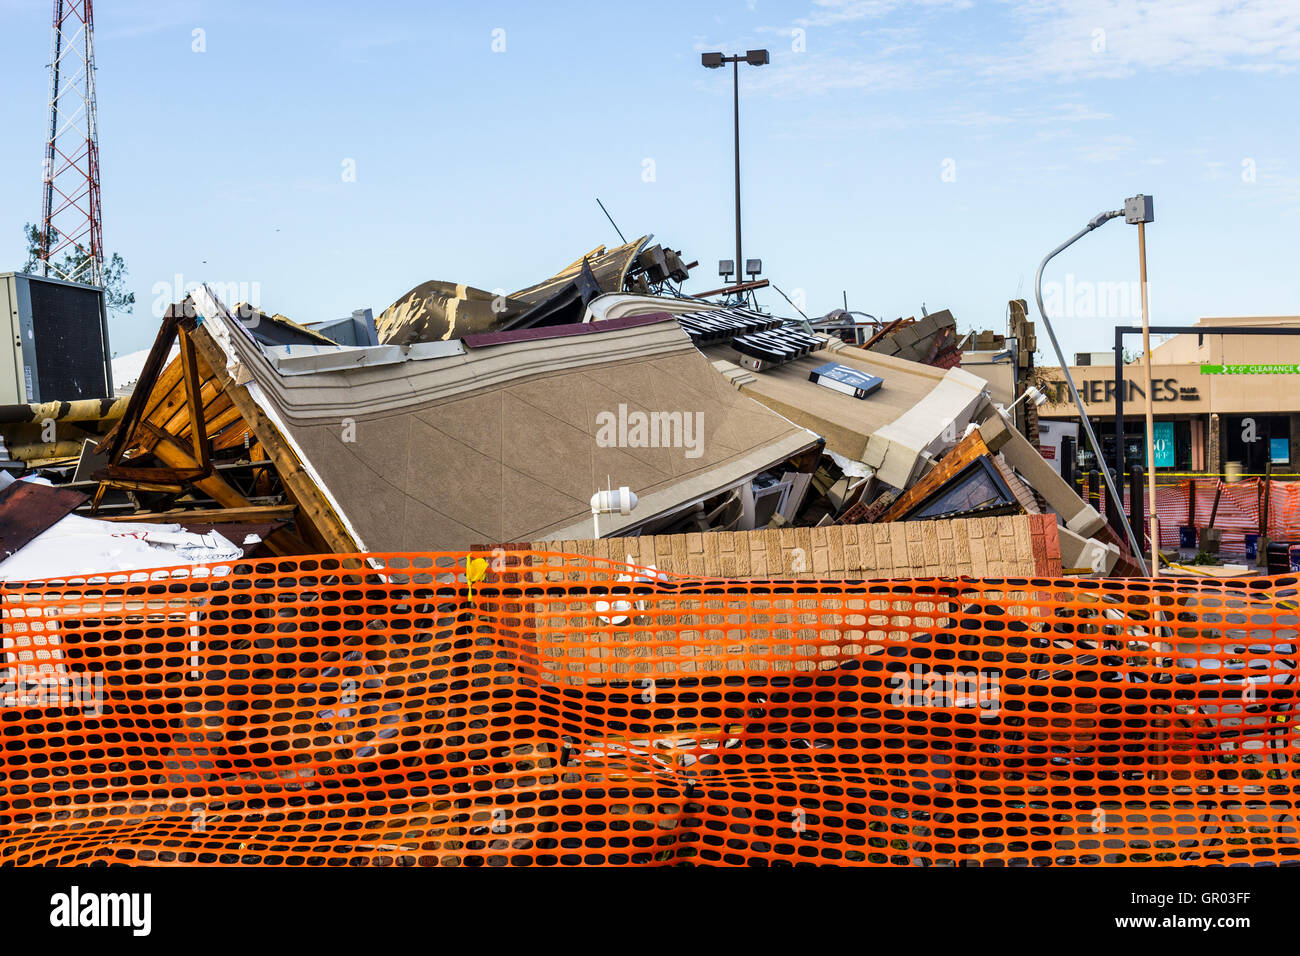 Kokomo - August 24, 2016: Several EF3 tornadoes touched down, one of which destroyed a local Starbucks 4 - Stock Image